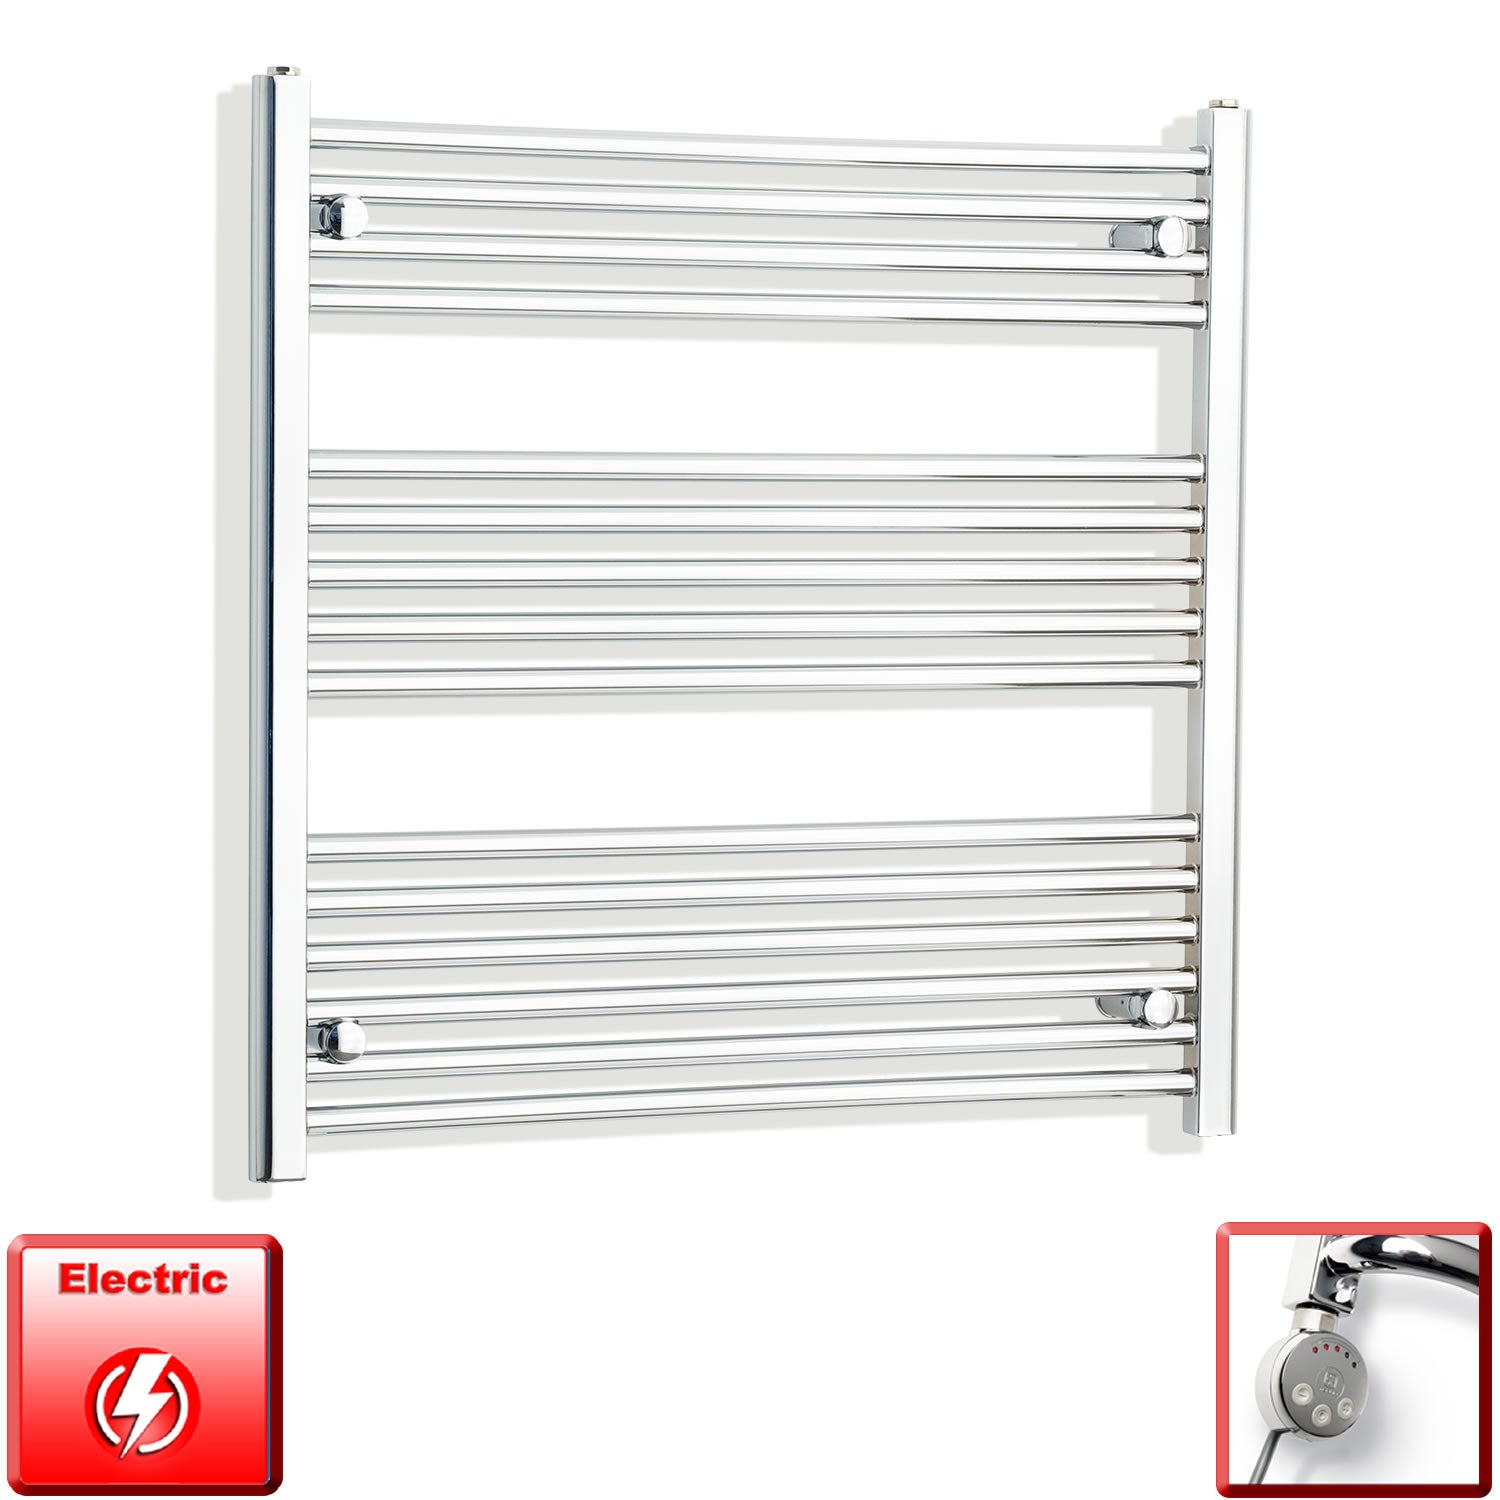 850mm Wide 800mm High Pre-Filled Chrome Electric Towel Rail Radiator With Thermostatic MEG Element